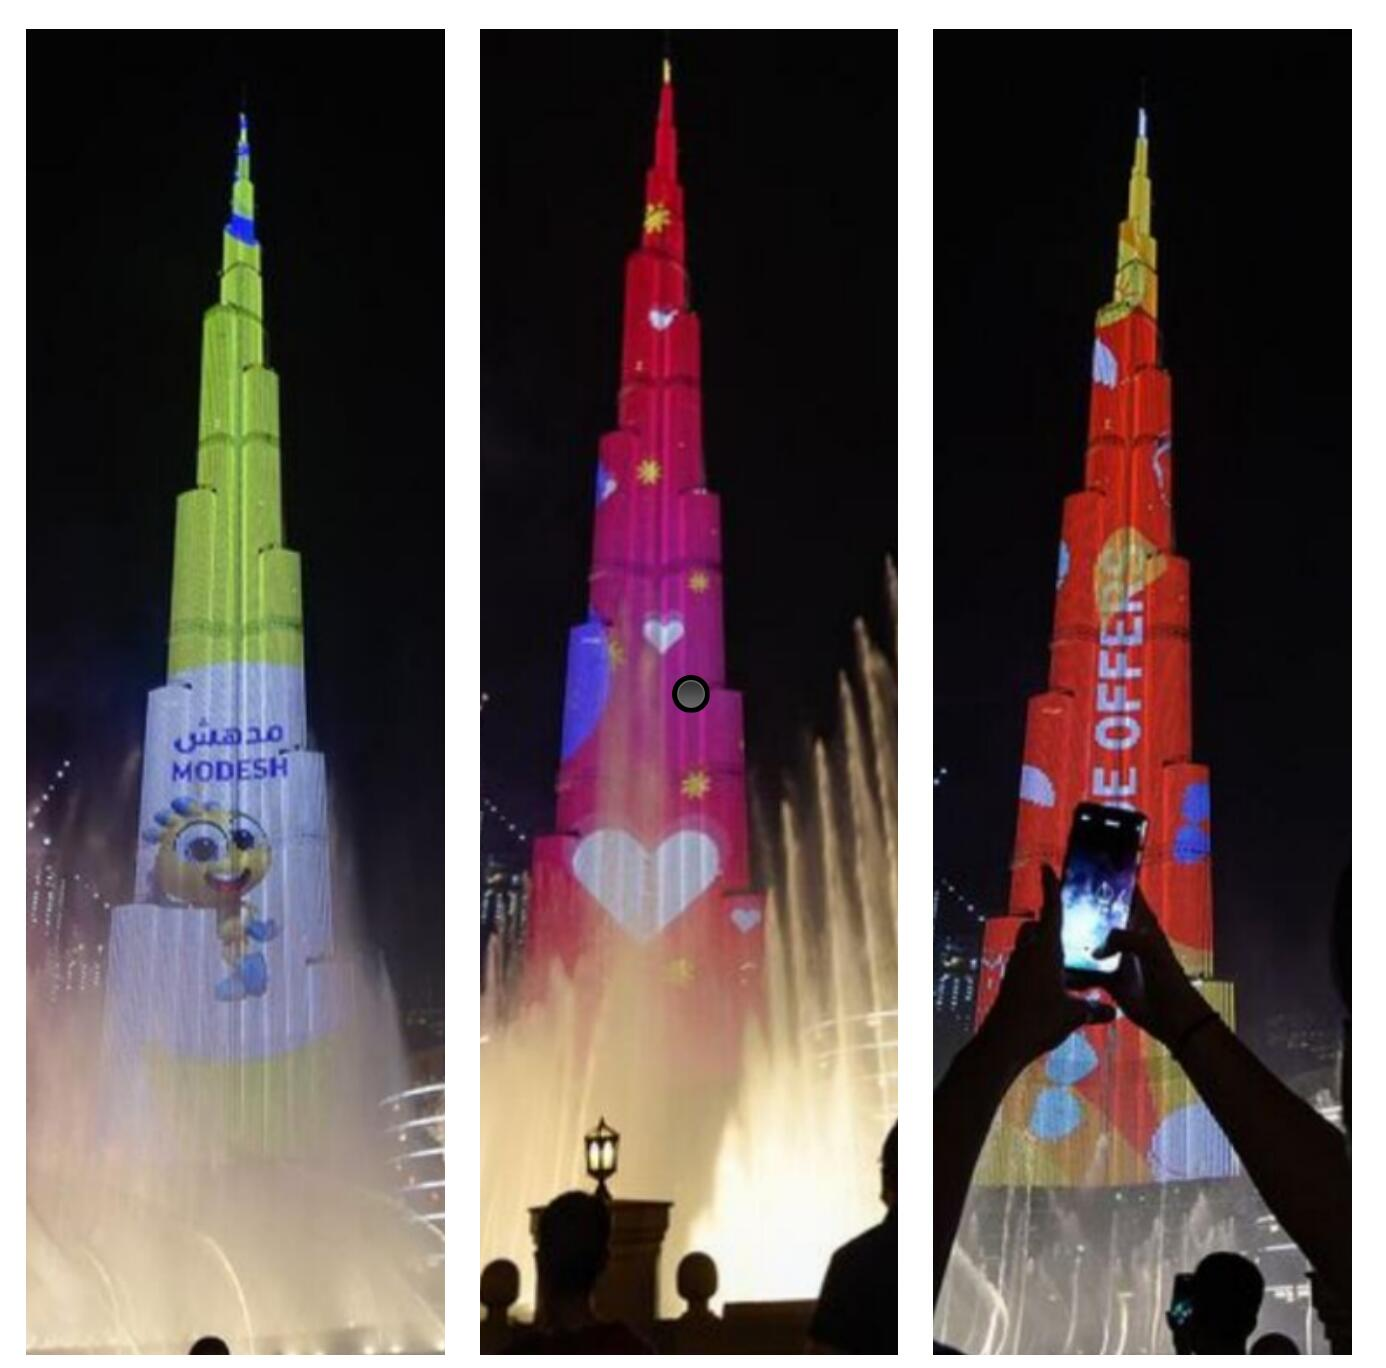 Burj Khalifa lights up for Dubai Summer Surprises